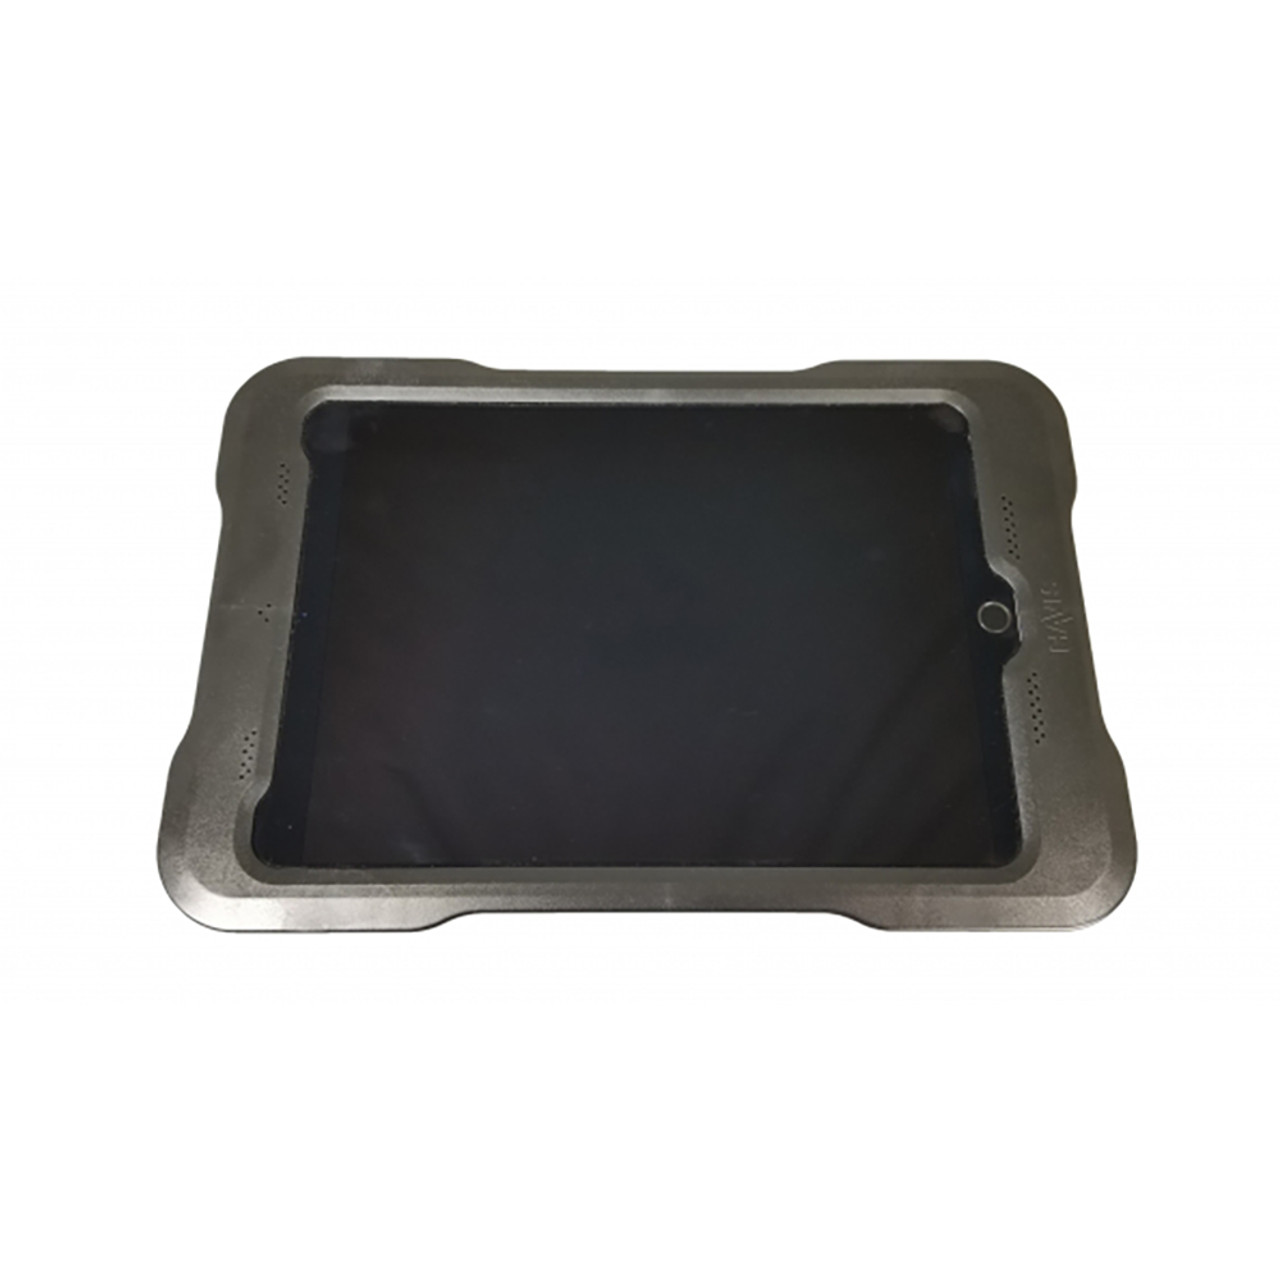 Havis DS-TAB-101 Docking Station and TC-101 Tablet Case for Gen 1 Apple iPad 10.5-inch Pro, Works in Portrait or Landscape Mode, Lock and Key for In Vehicle Security